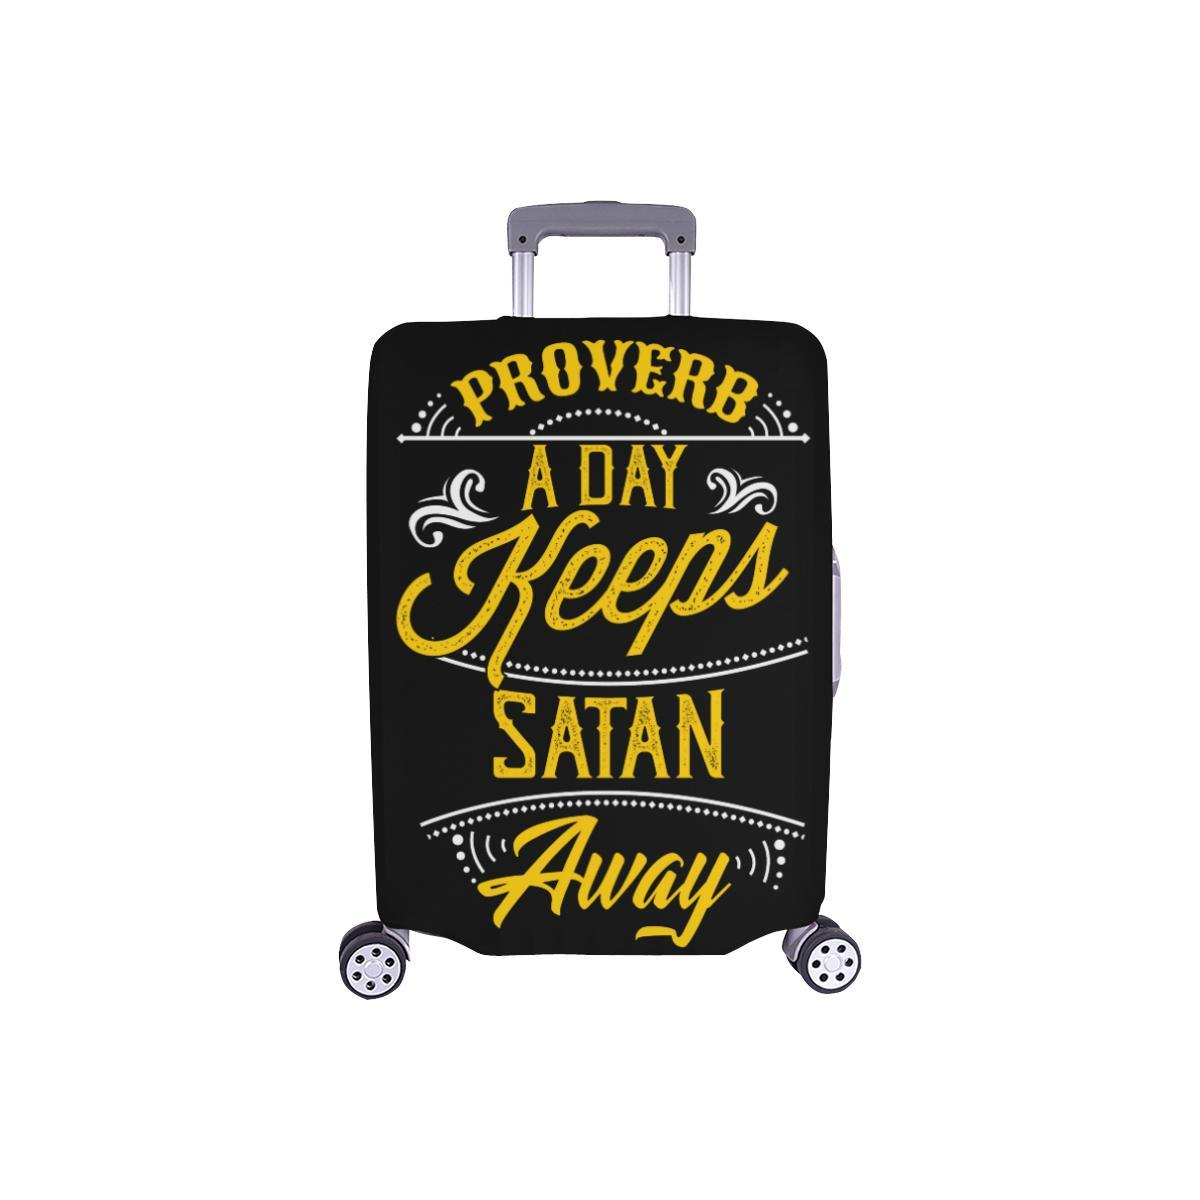 Proverb A Day Keeps Satan Away Christian Travel Luggage Cover Suitcase Protector-S-Black-JoyHip.Com